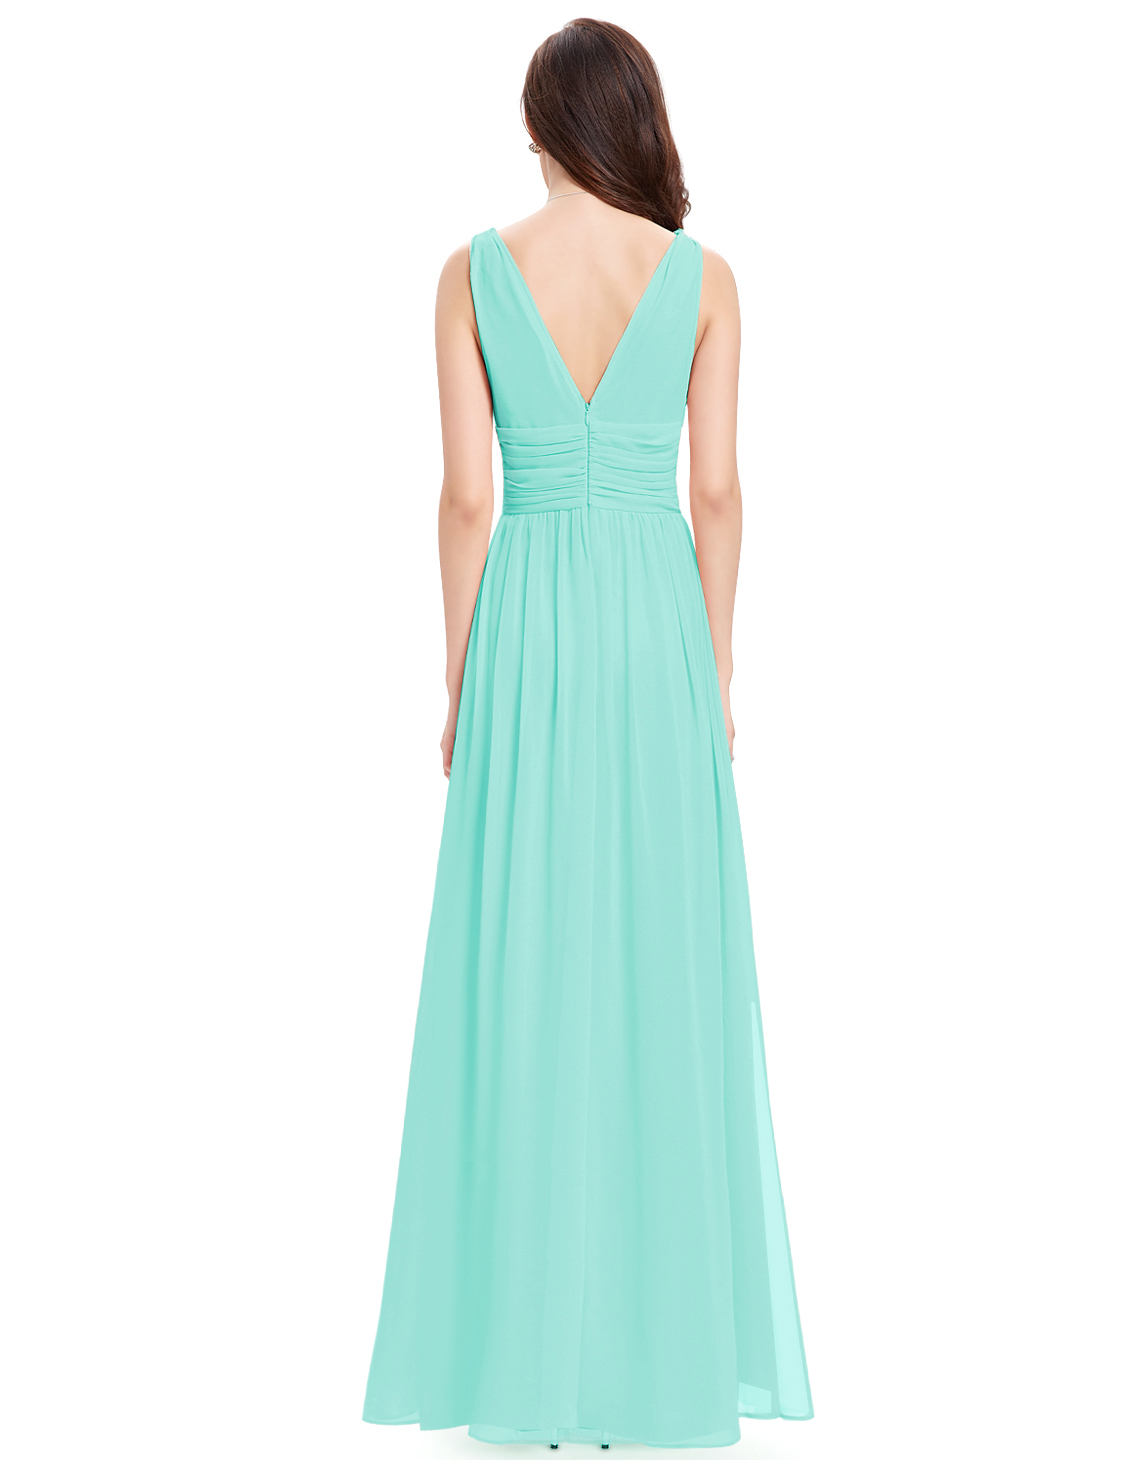 Ever-pretty UK Long Double V Neck Evening Gown Bridesmaids Maxi ...